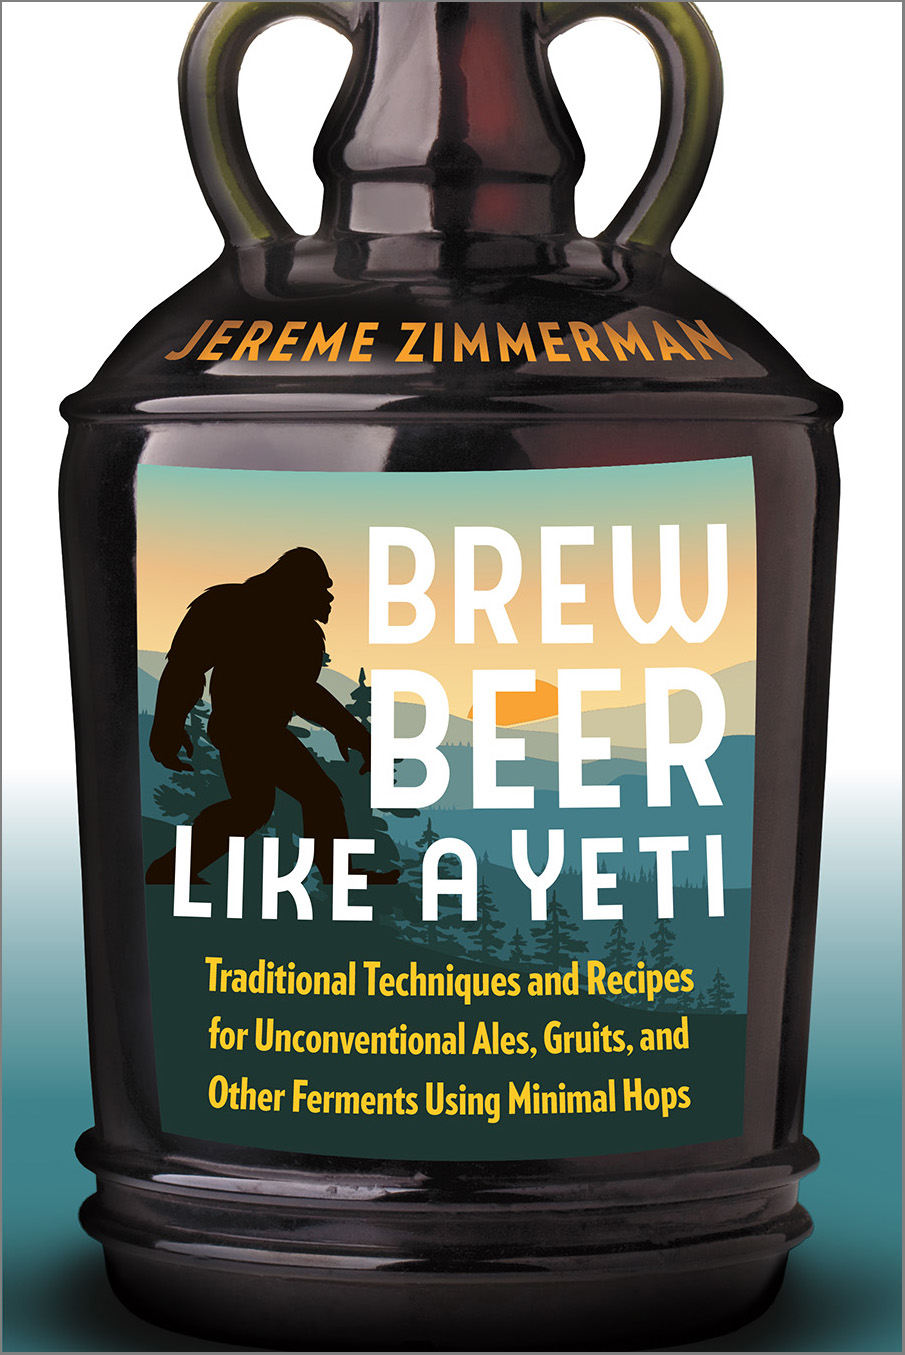 The Brew Beer Like a Yeti cover